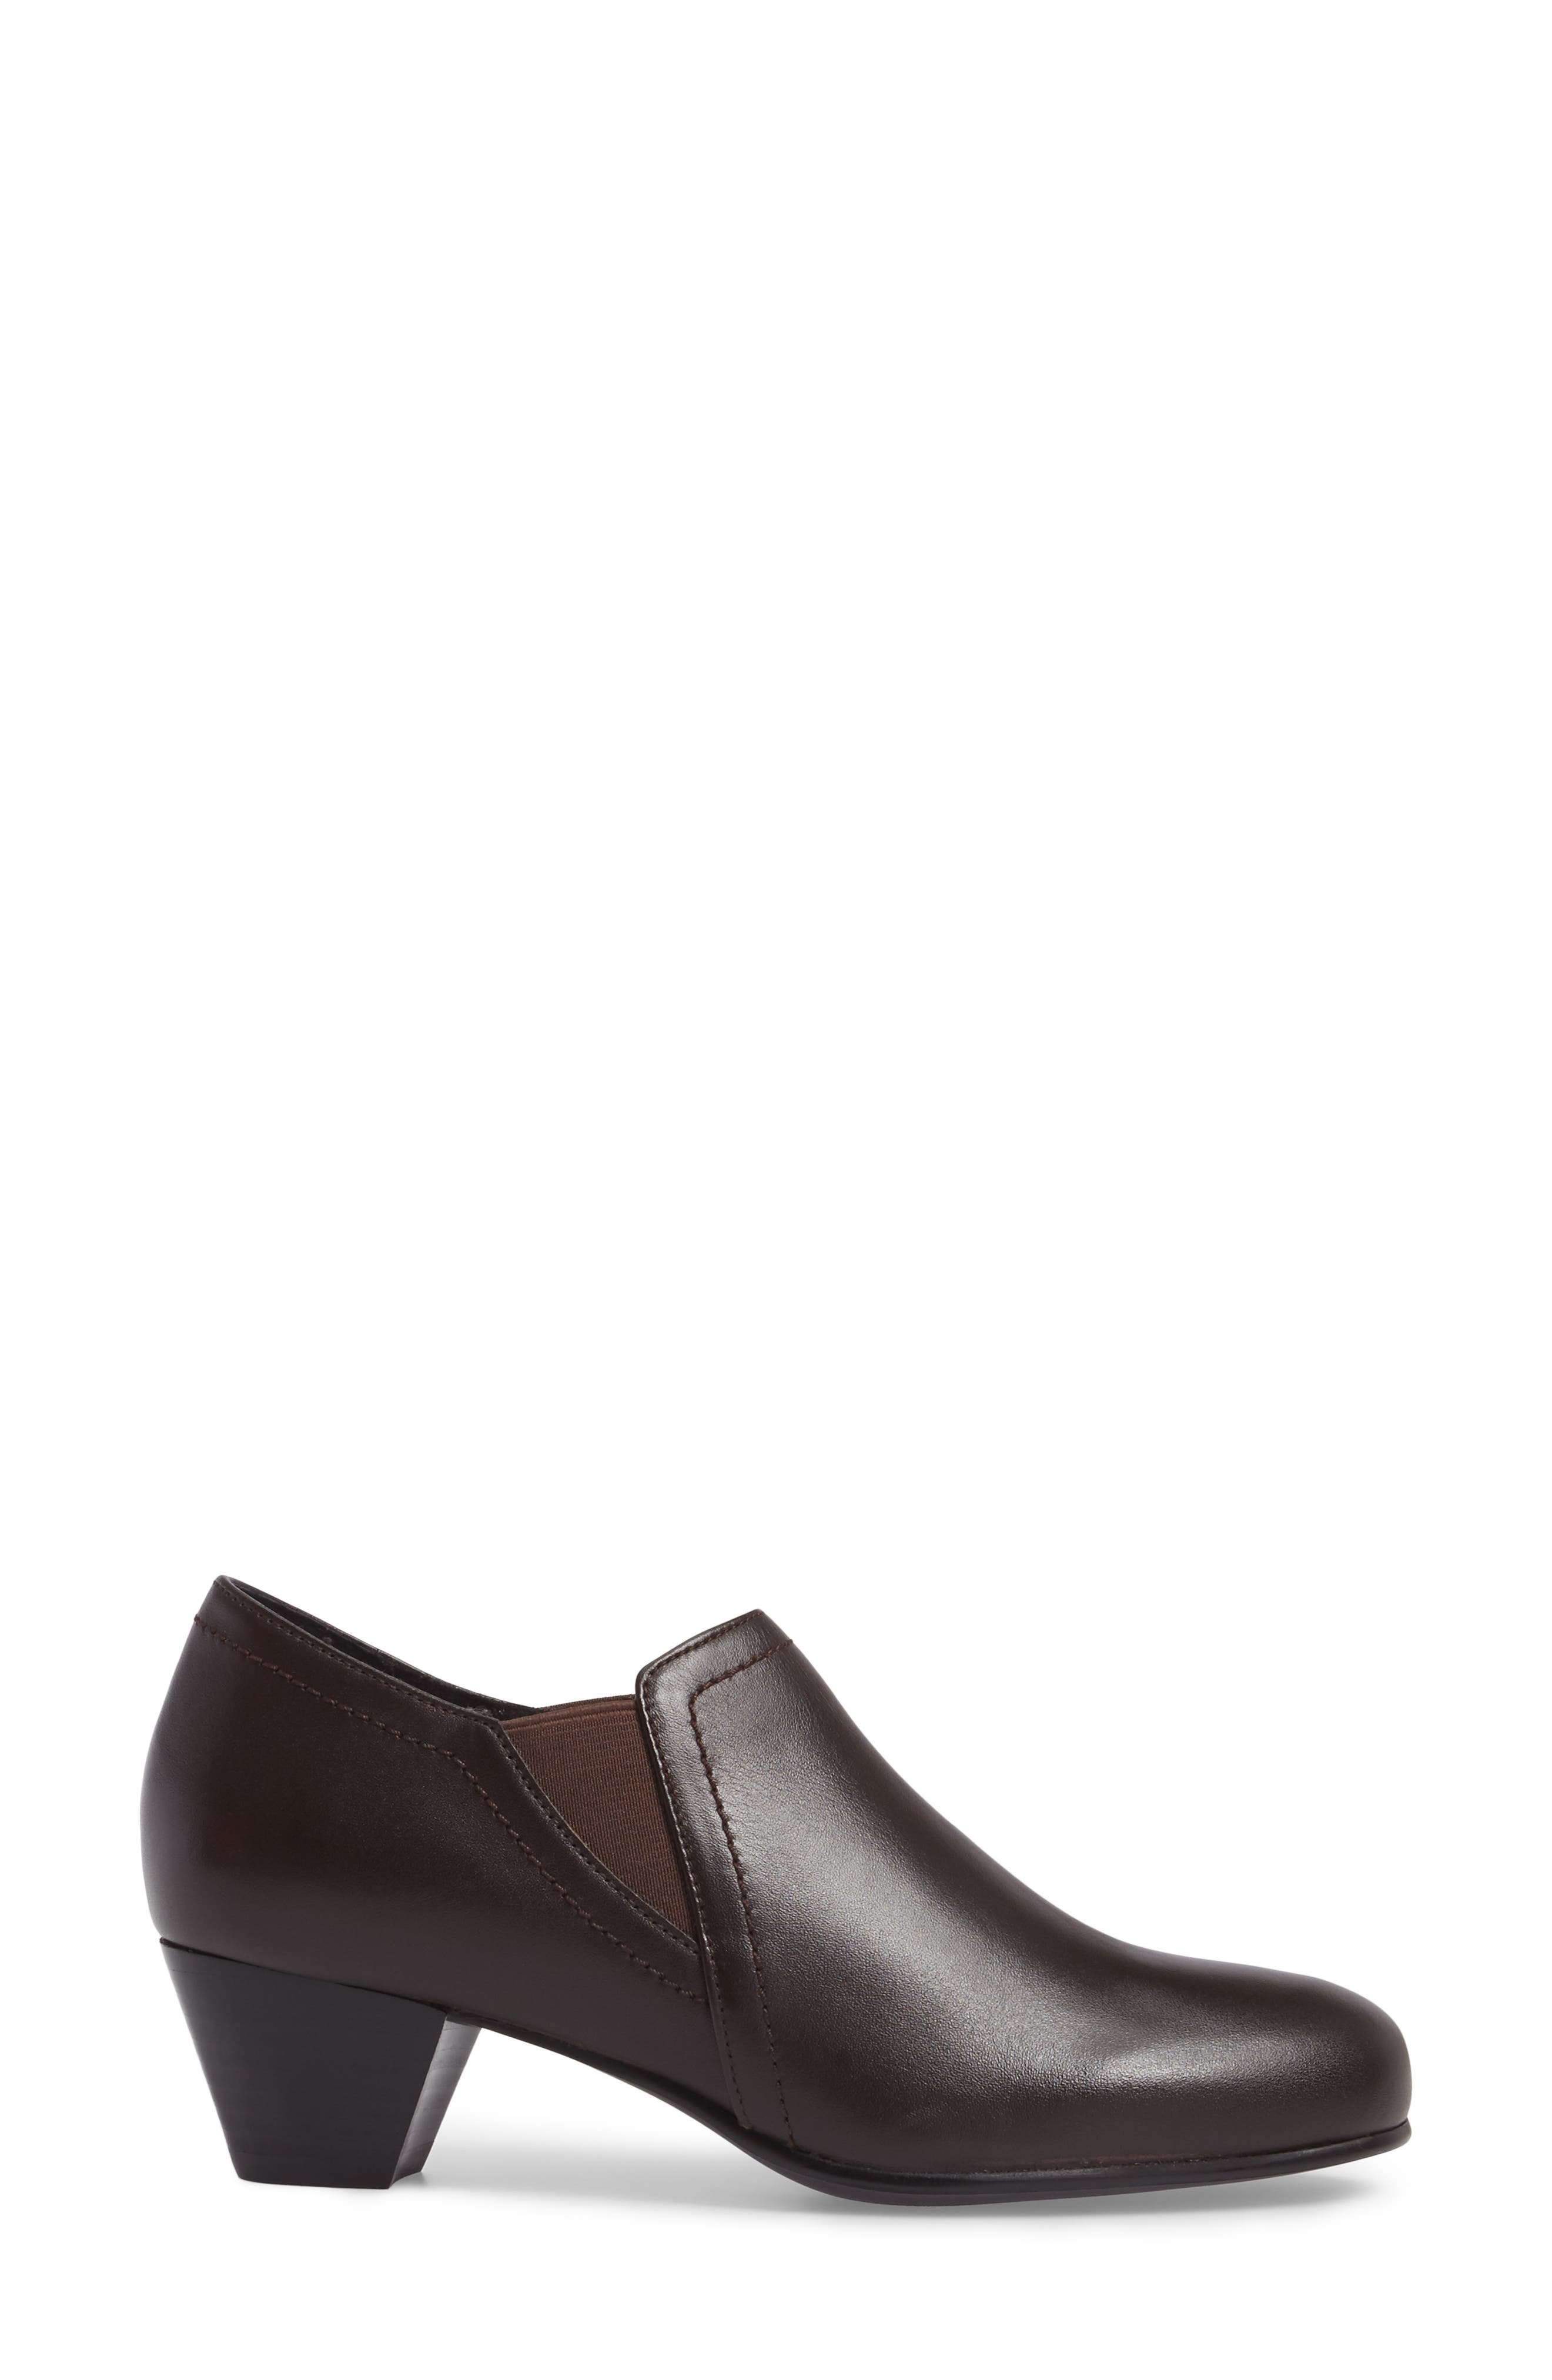 Maple Bootie,                             Alternate thumbnail 3, color,                             BROWN LEATHER